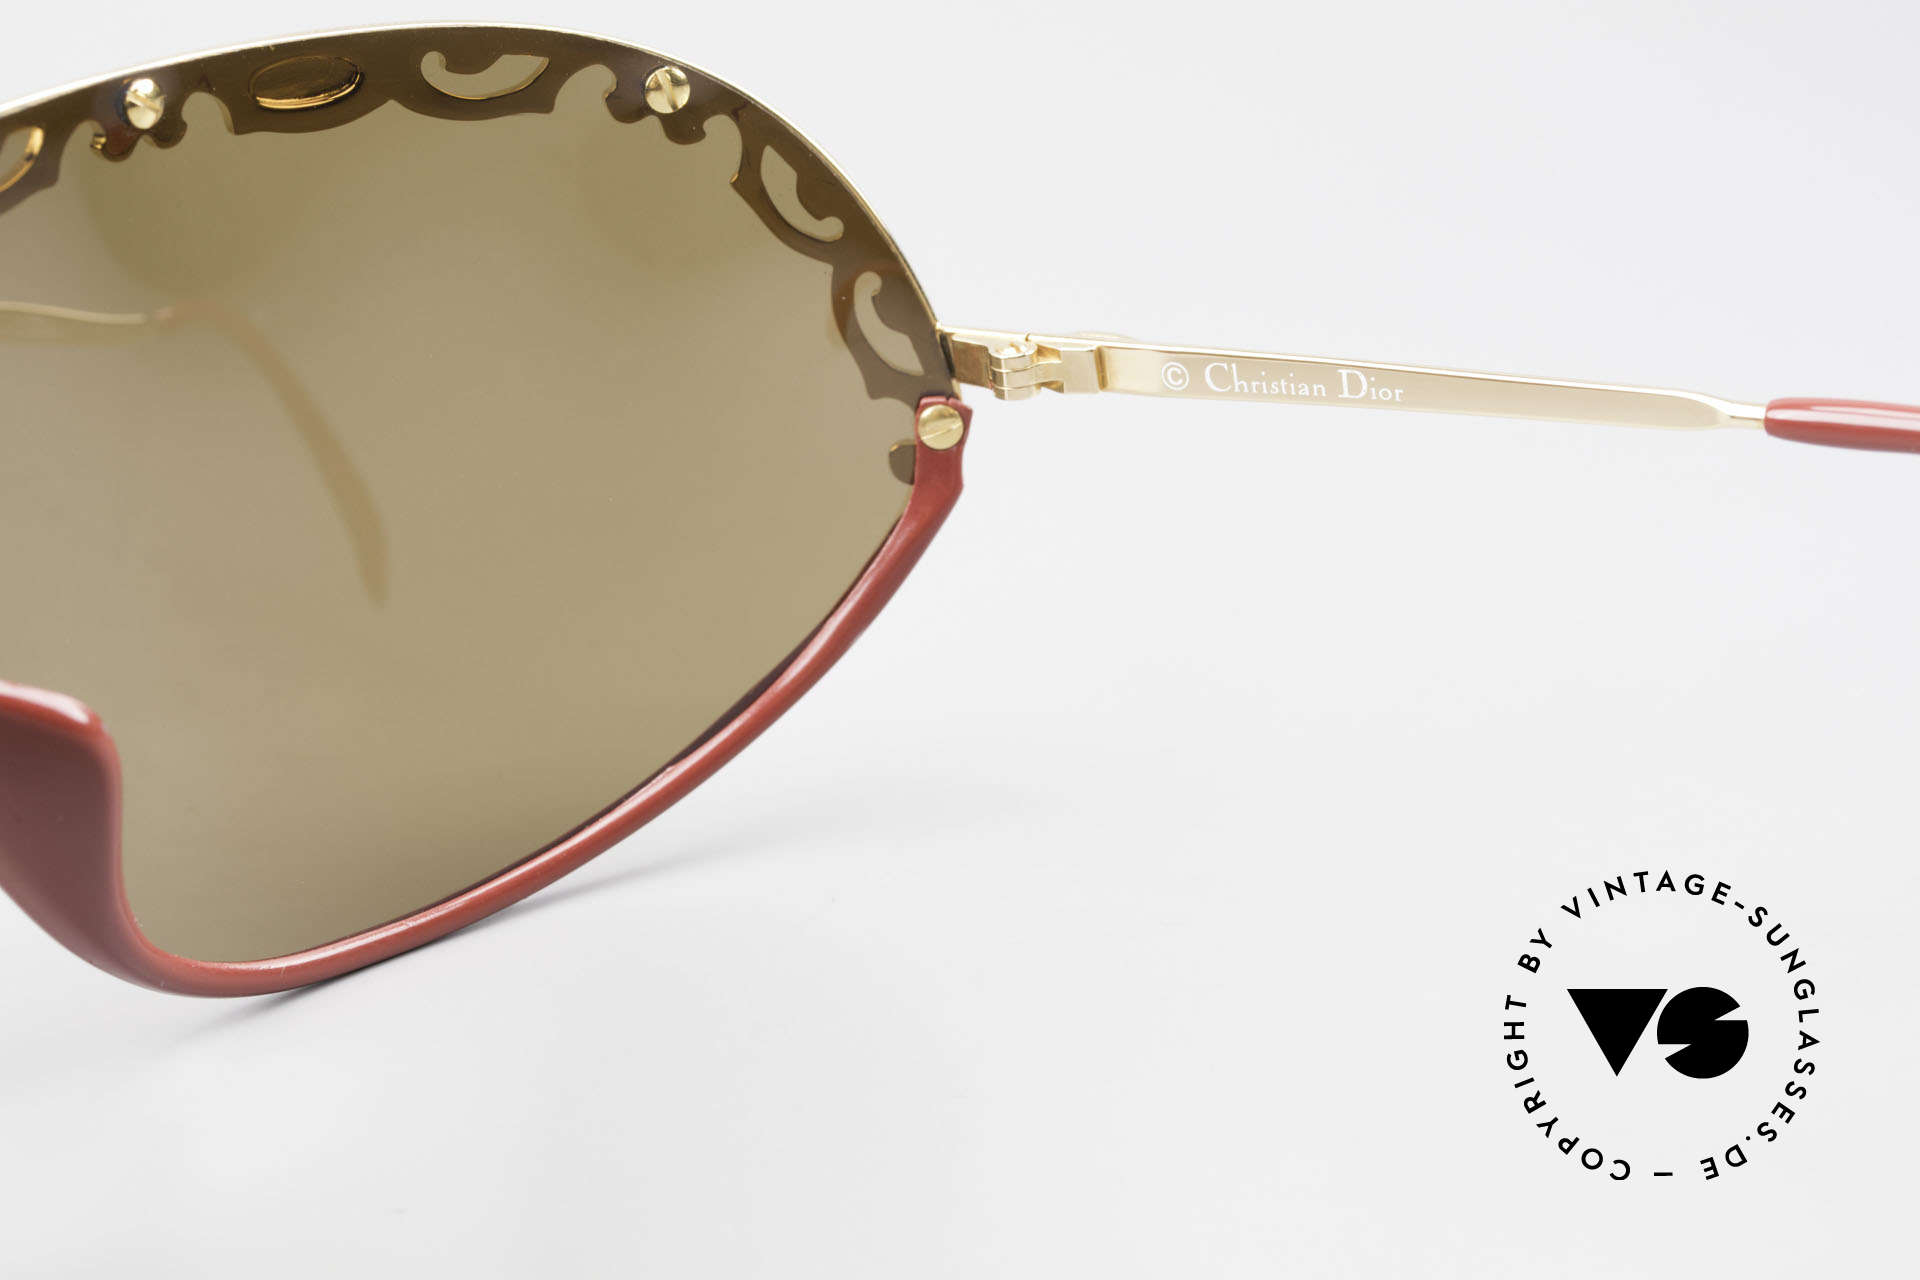 Christian Dior 2501 Panorama View Sunglasses 80's, Size: extra large, Made for Women